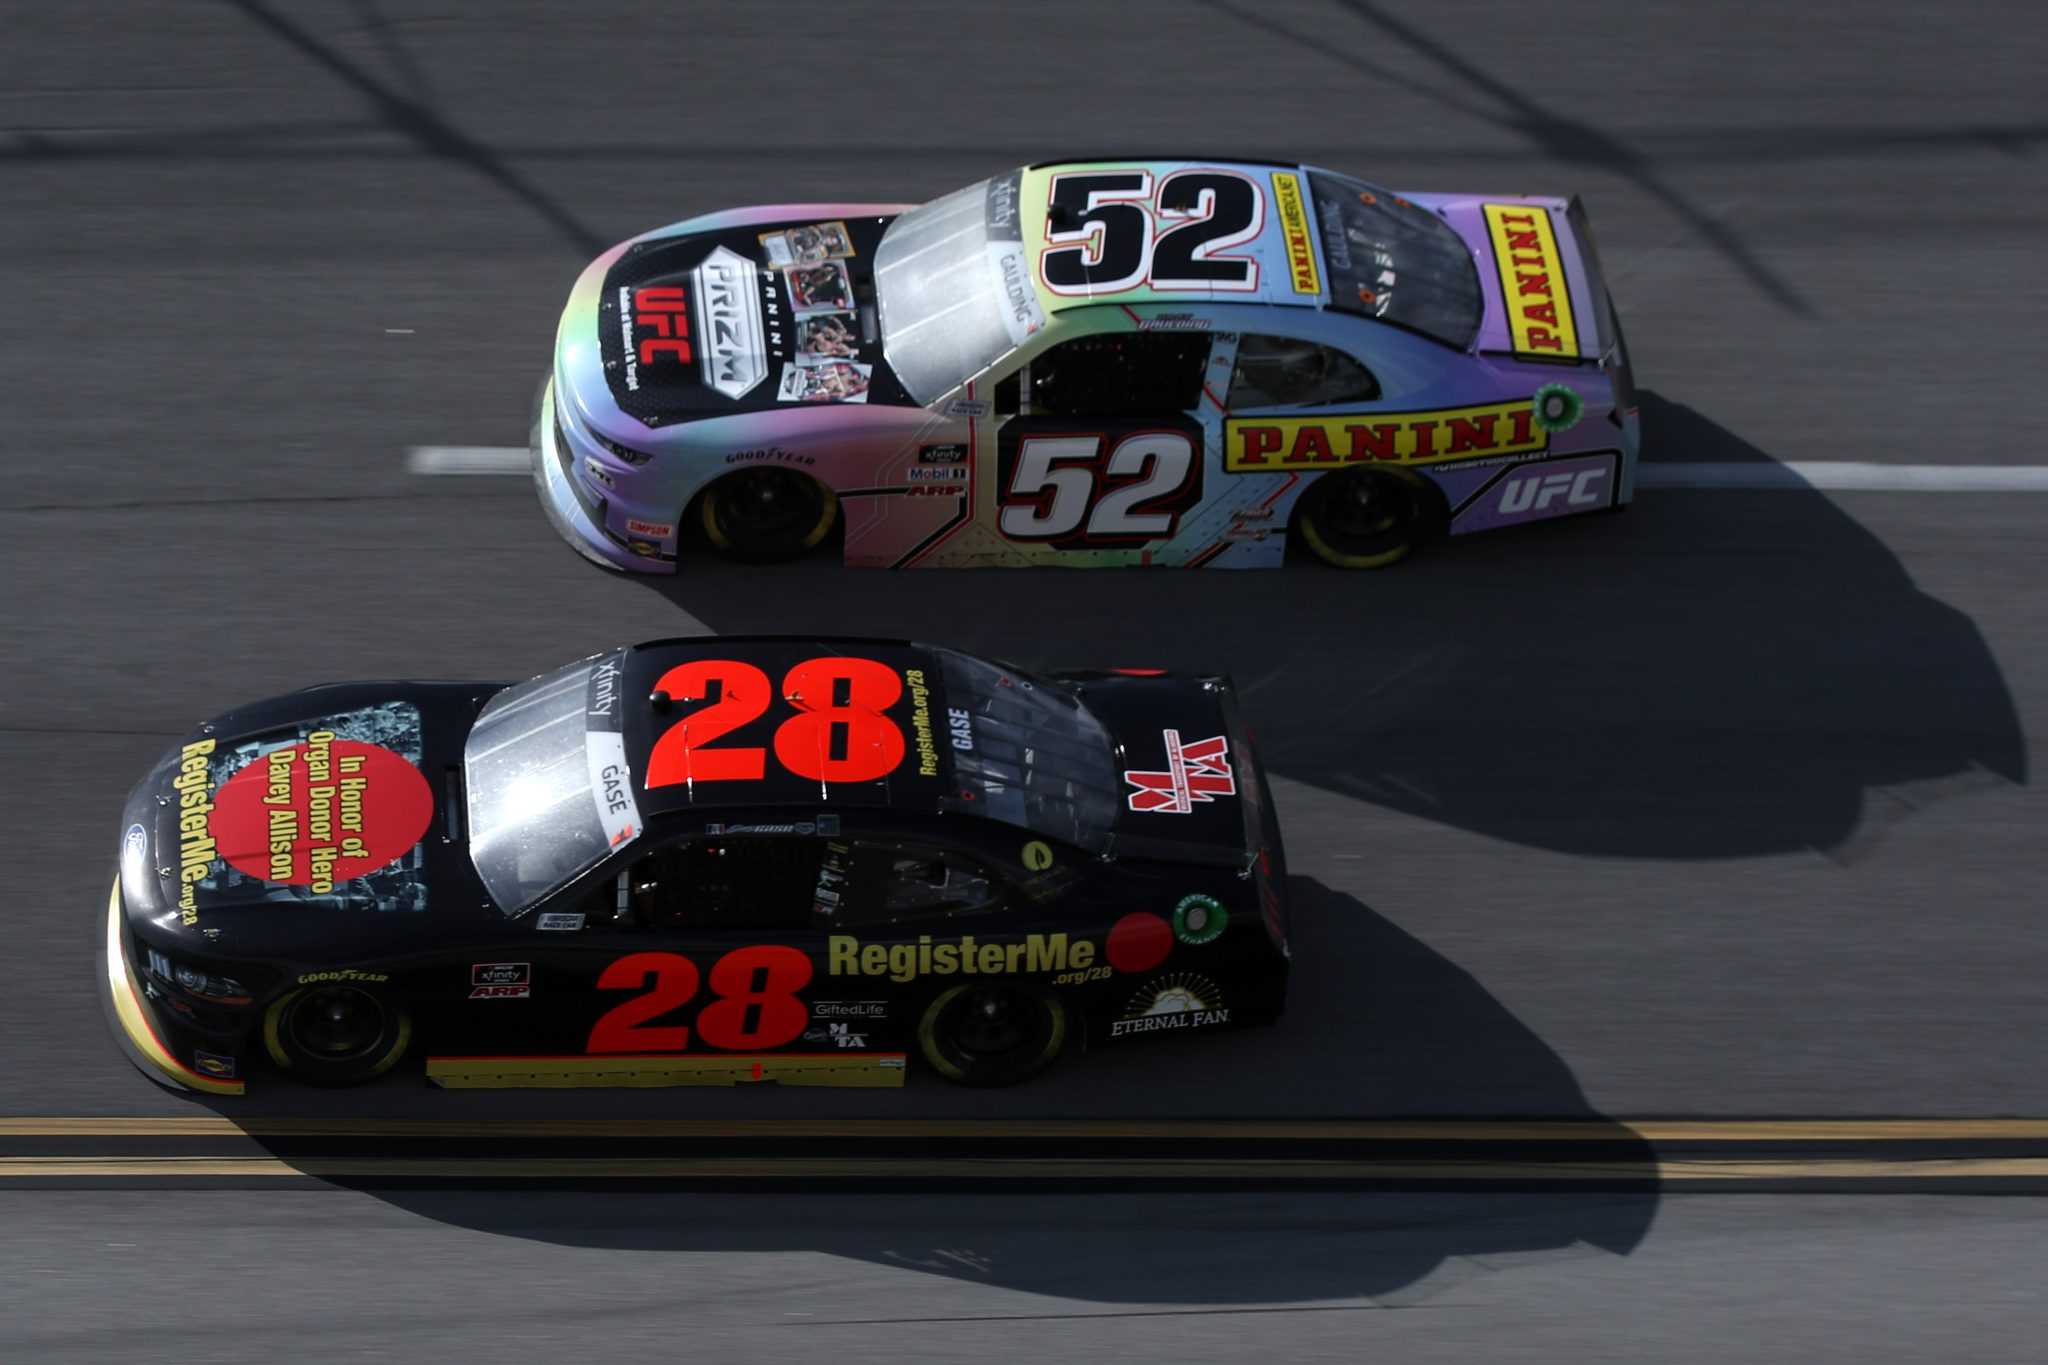 TALLADEGA, ALABAMA - APRIL 24: Gray Gaulding, driver of the #52 Panini America Chevrolet, and Joey Gase, driver of the #28 Register Me Chevrolet, race during the NASCAR Xfinity Series Ag-Pro 300 at Talladega Superspeedway on April 24, 2021 in Talladega, Alabama. (Photo by Sean Gardner/Getty Images)   Getty Images